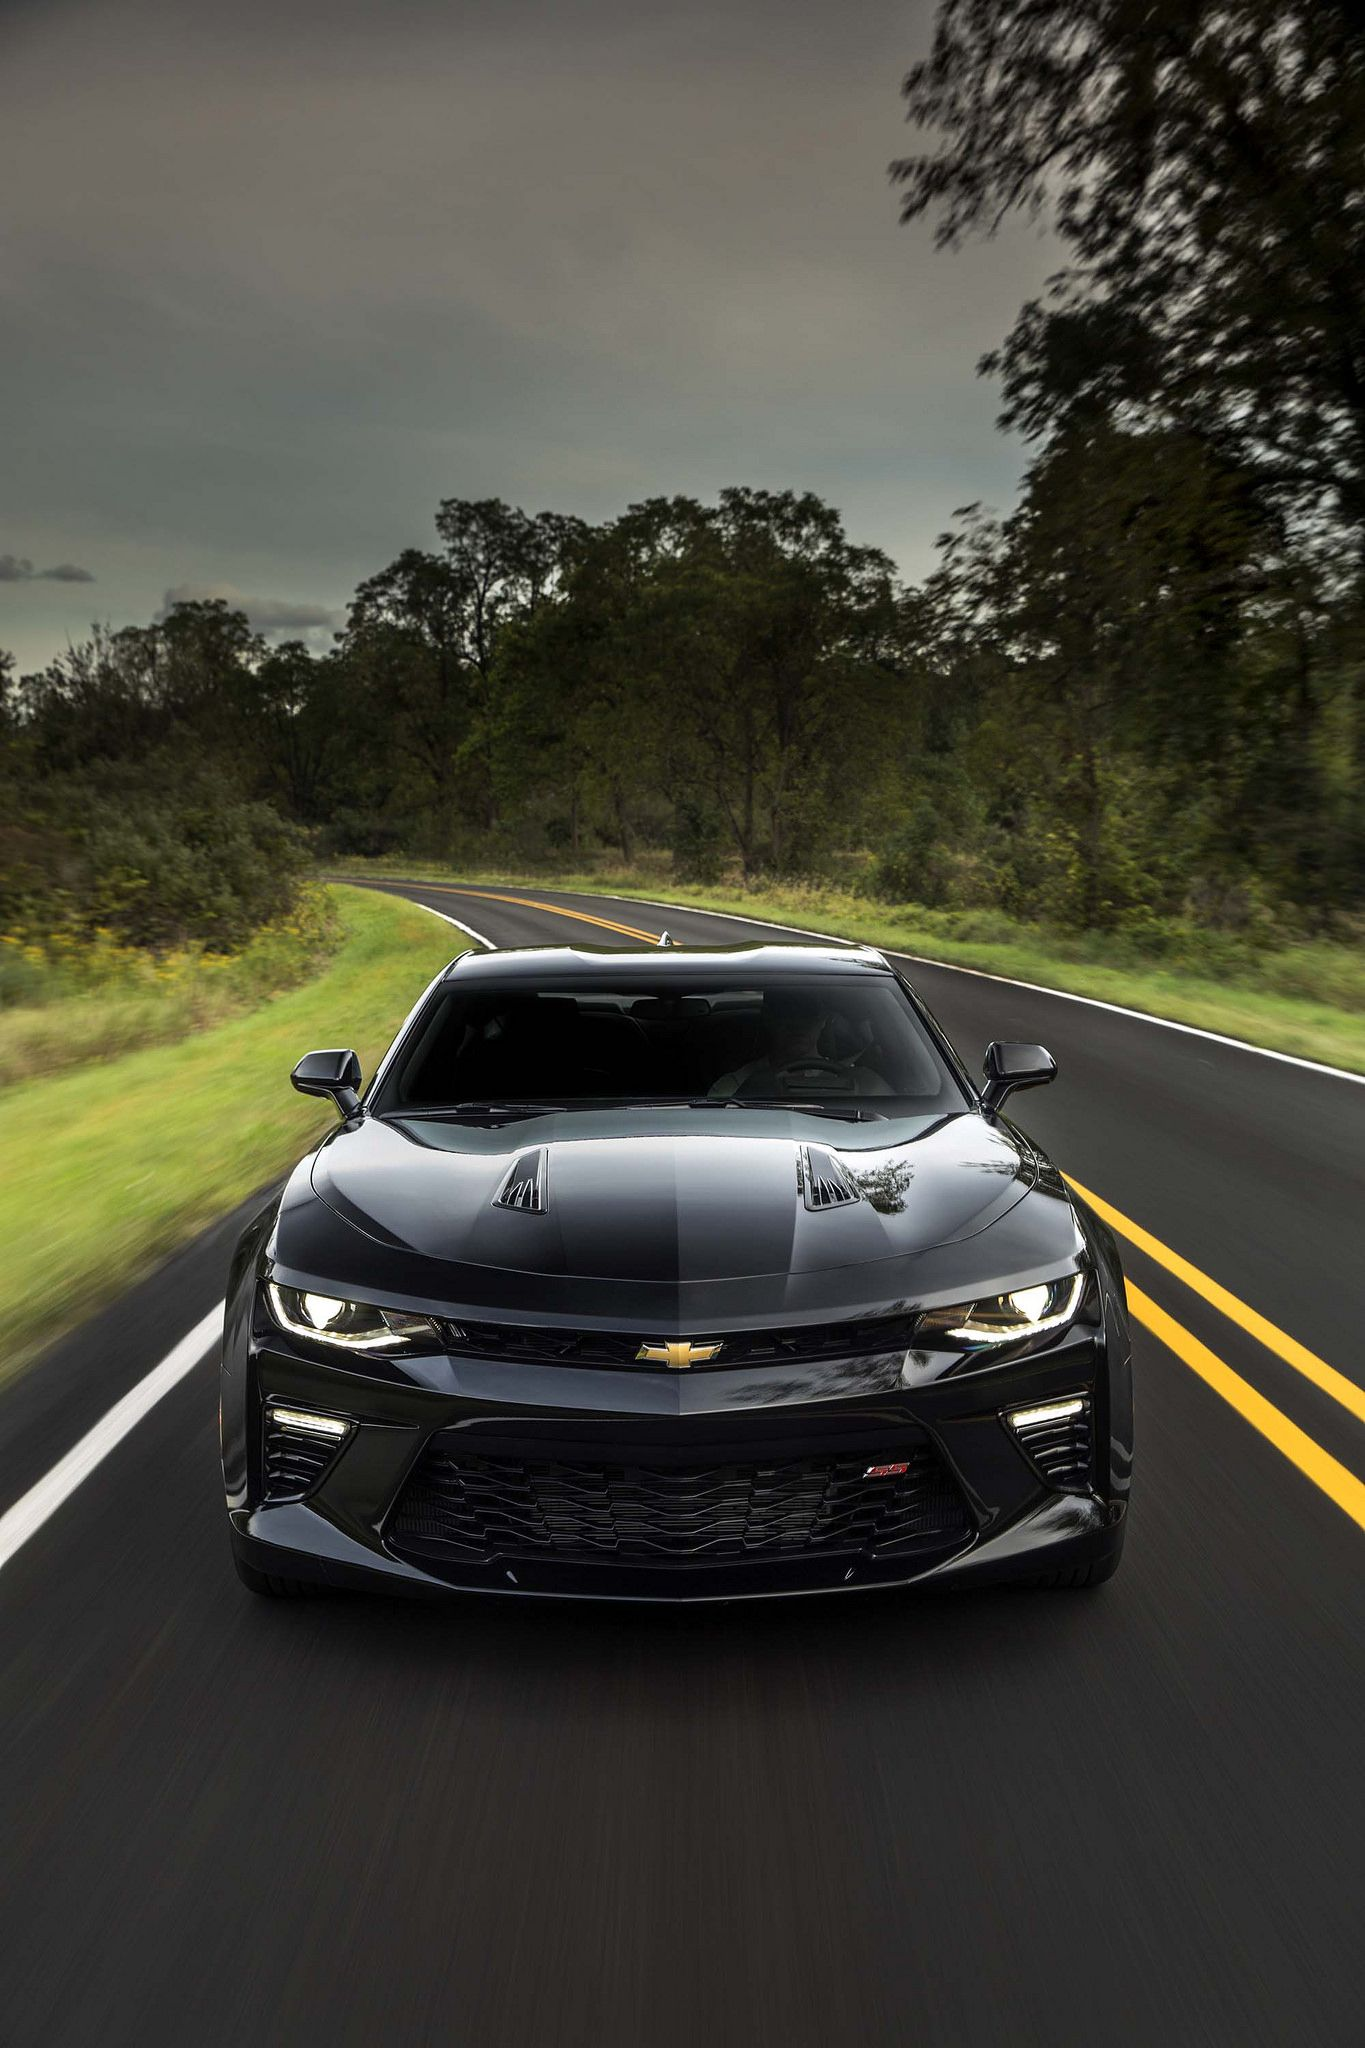 2016 camaro ss breaks the 200 mph mark hennessey performance propelled their 2016 camaro ss to a top speed of 202 1 mph